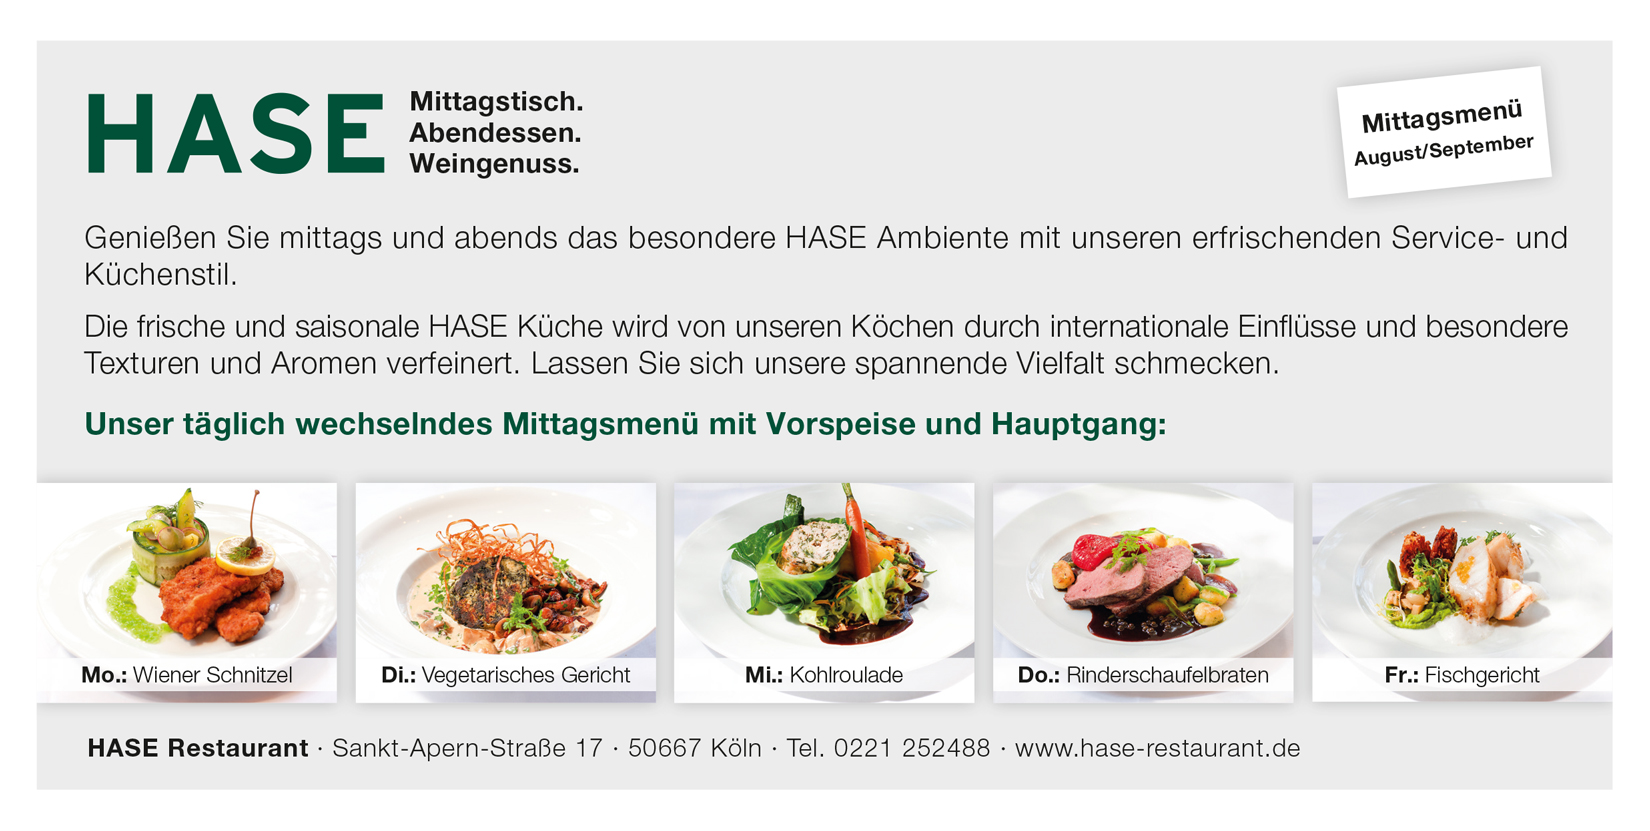 Mittagsmenüs - HASE Restaurant im August + September